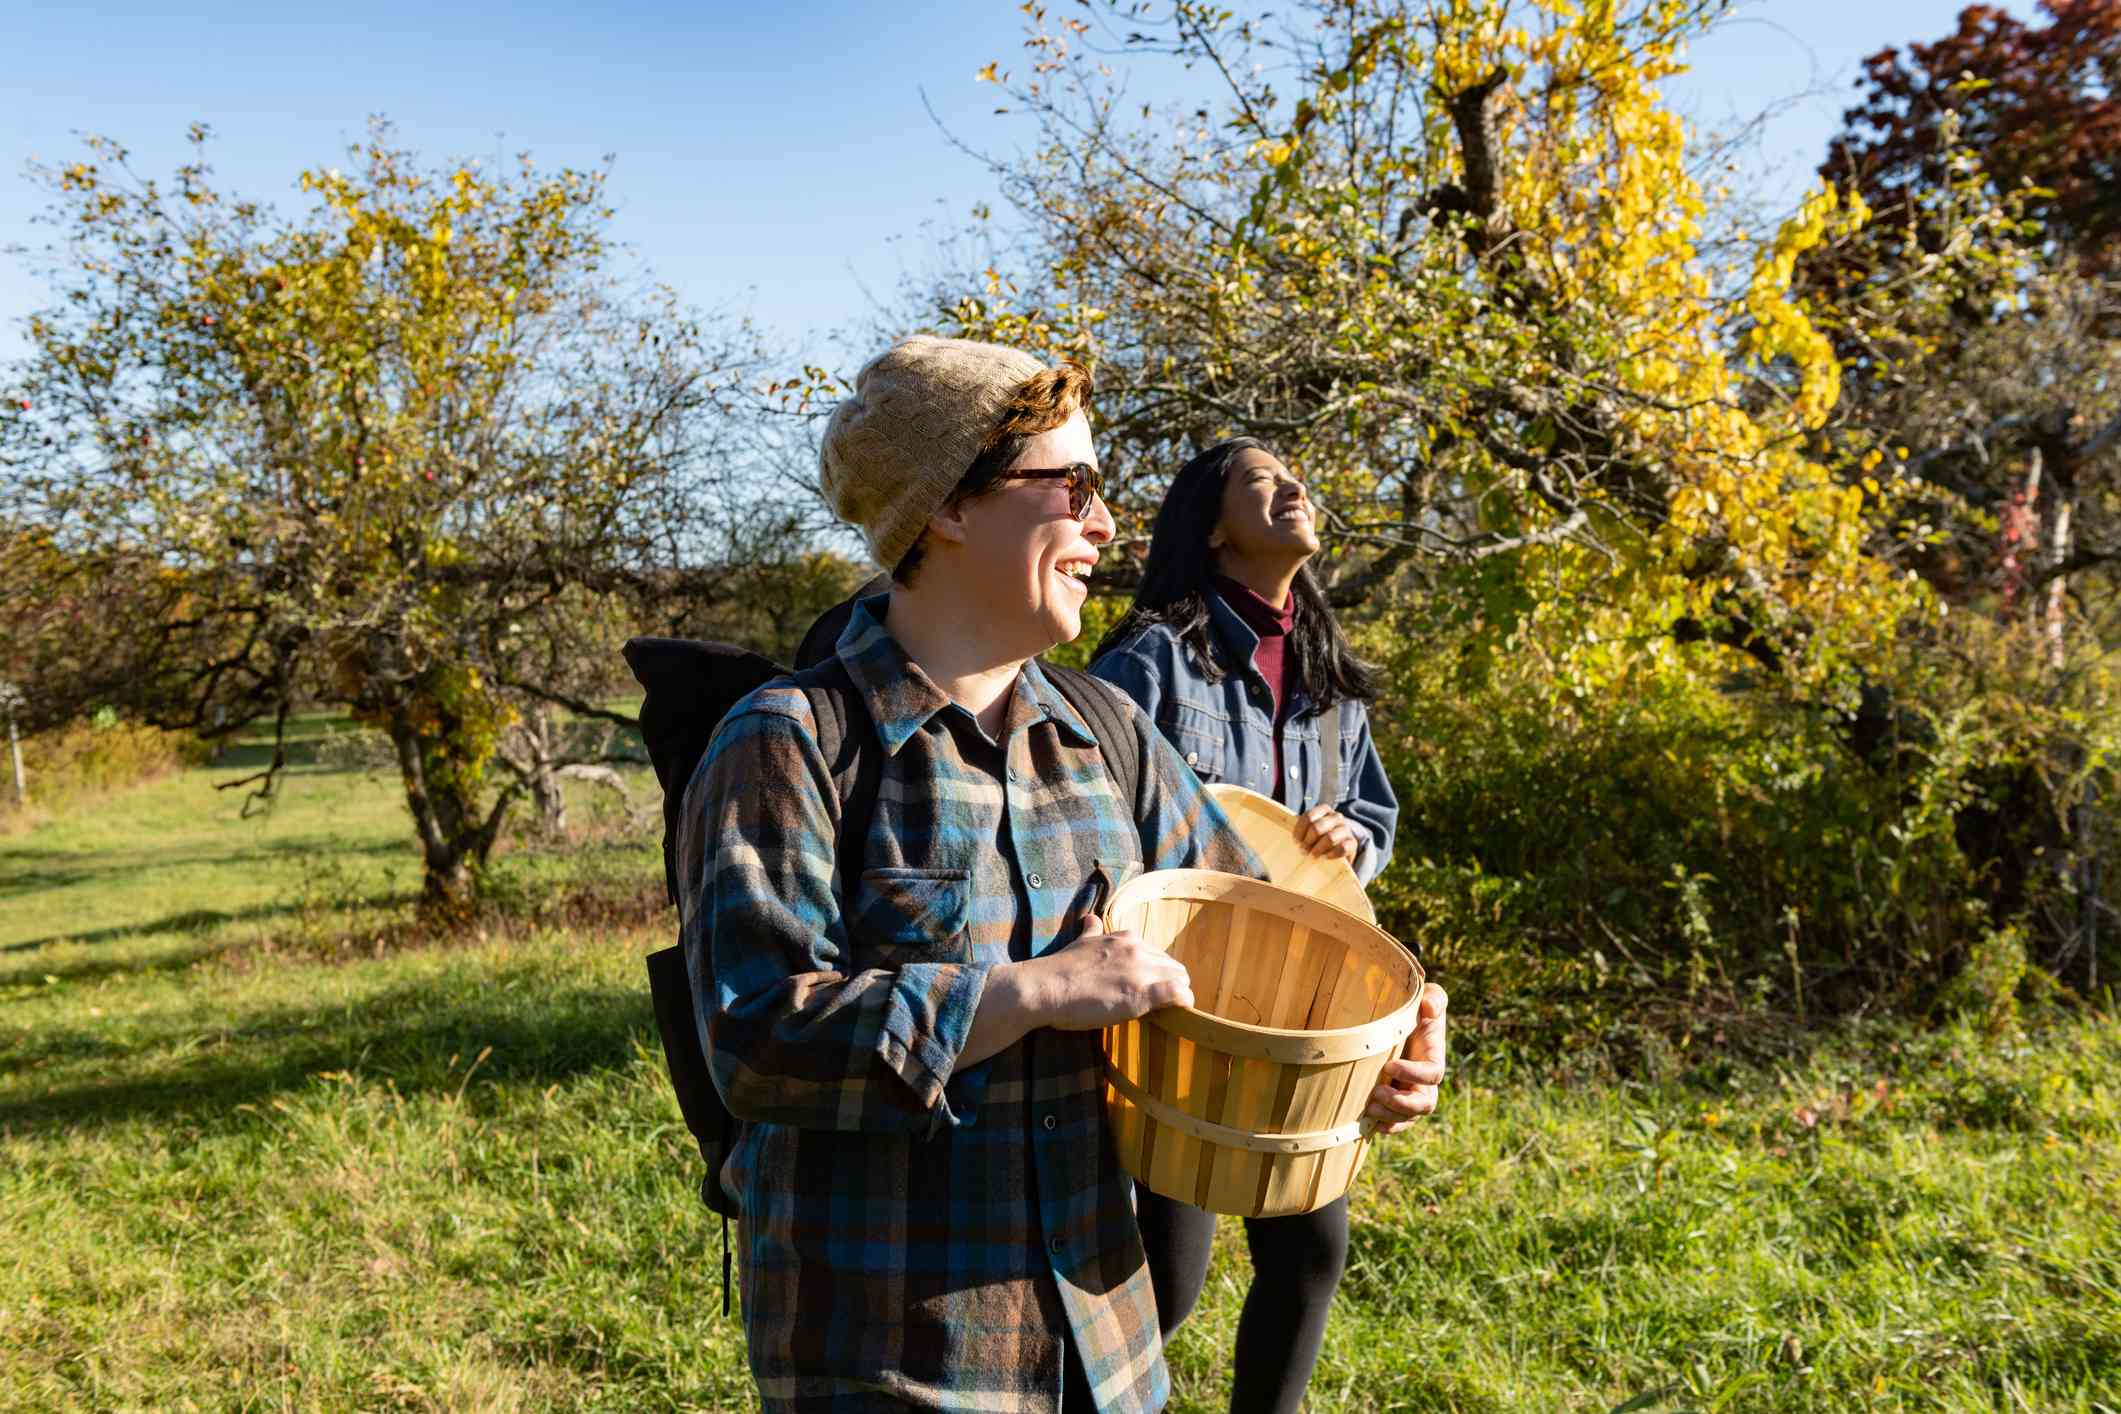 Two people walking through an orchard with baskets